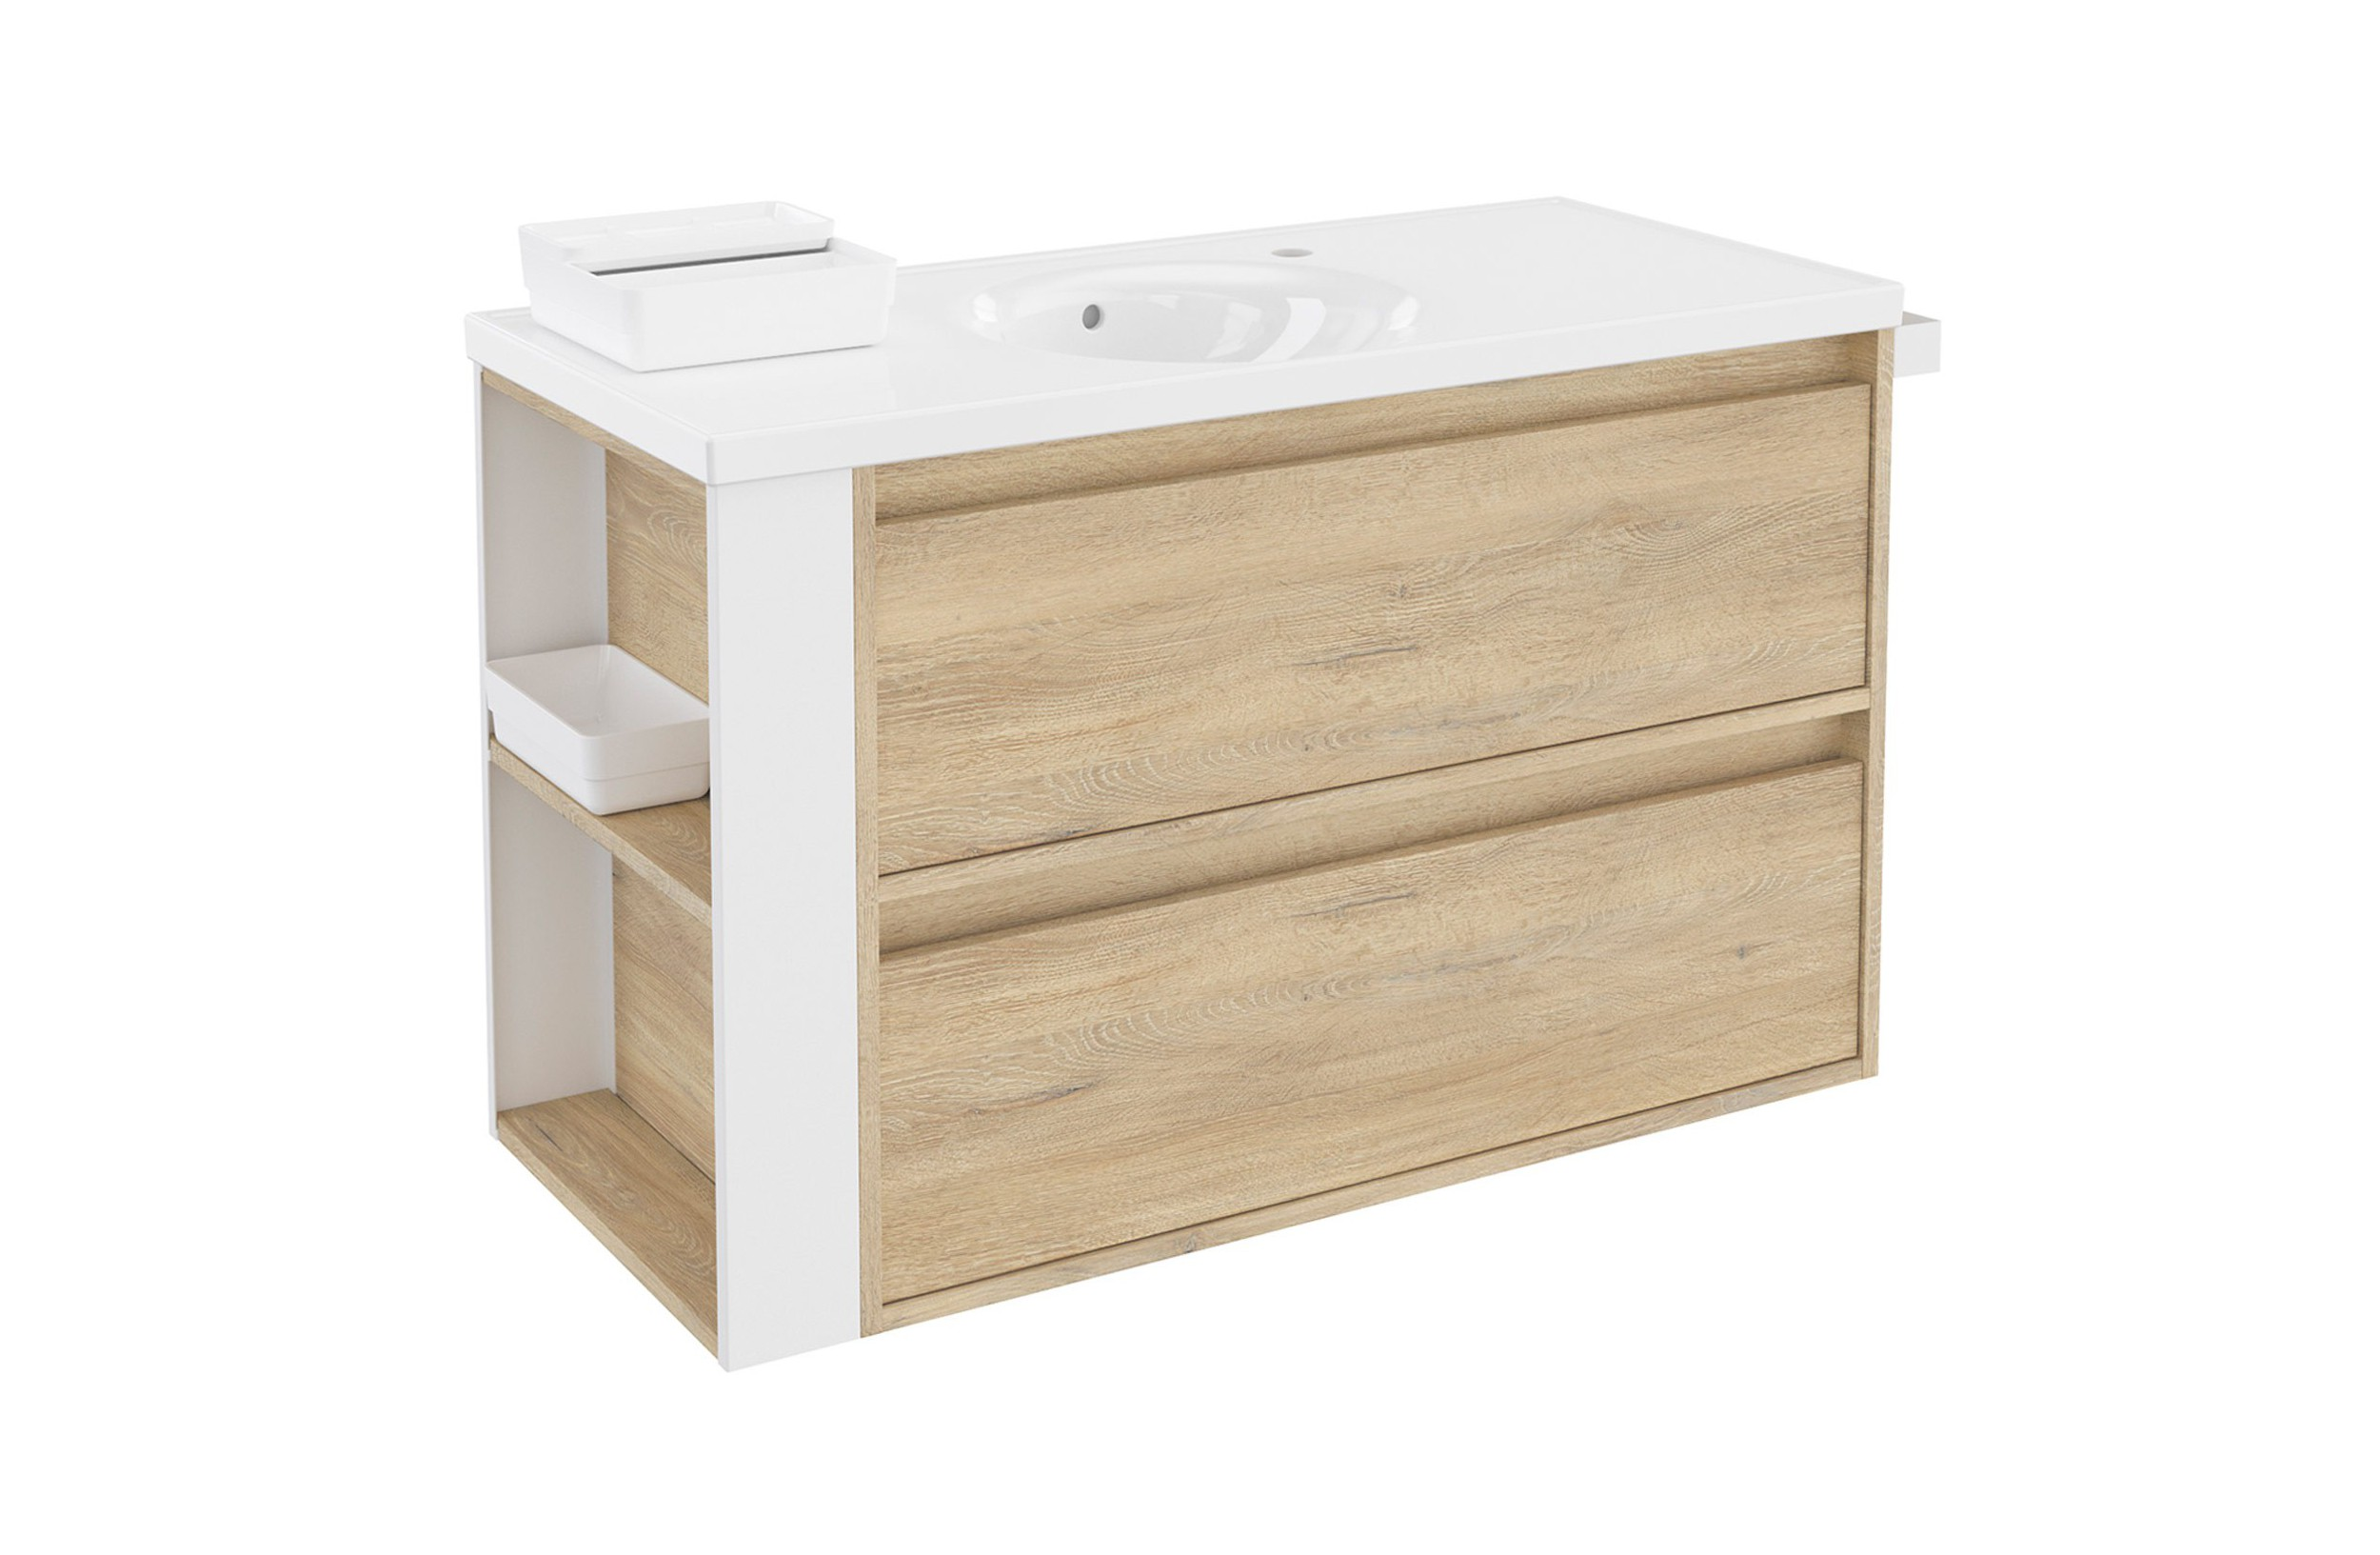 Toallero Mueble Lavabo Mueble B Smart 100 Cm Roble Nature Dos Cajones Con Lavabo Redondo Bath